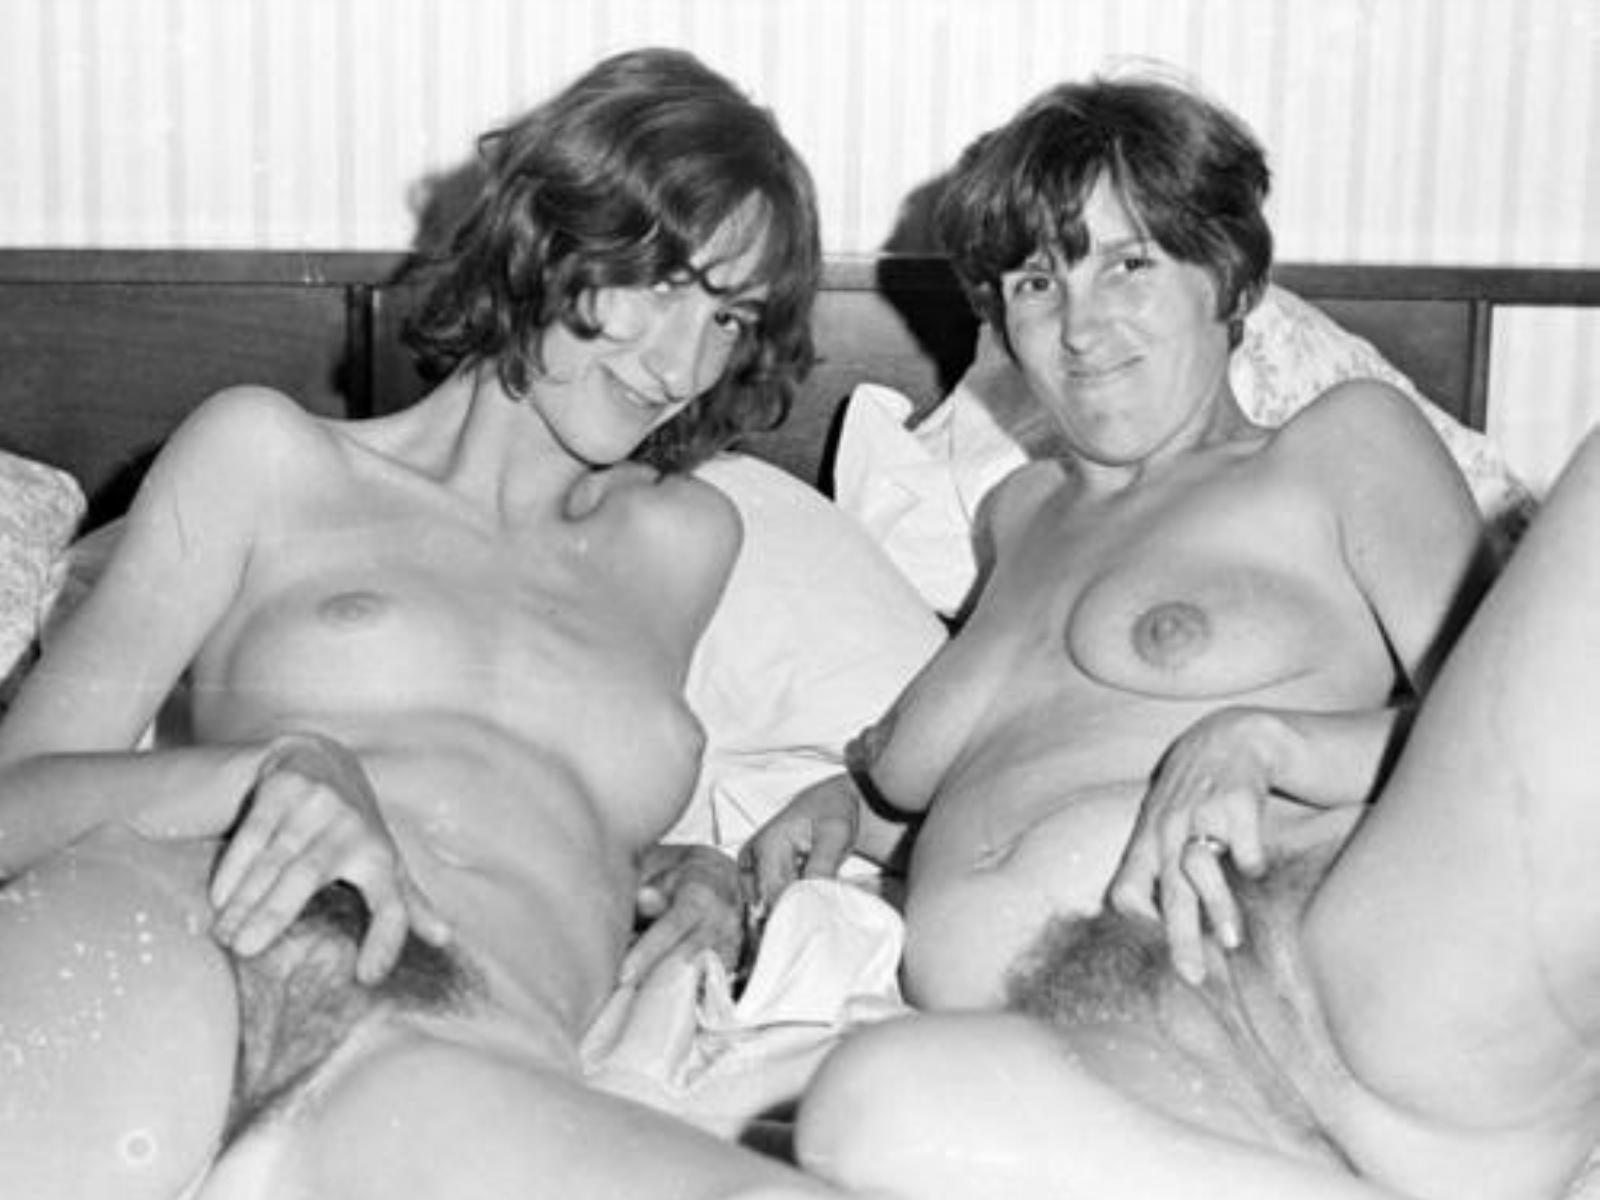 3 Moms Porno mom and daughter naked retro - quality xxx free compilations